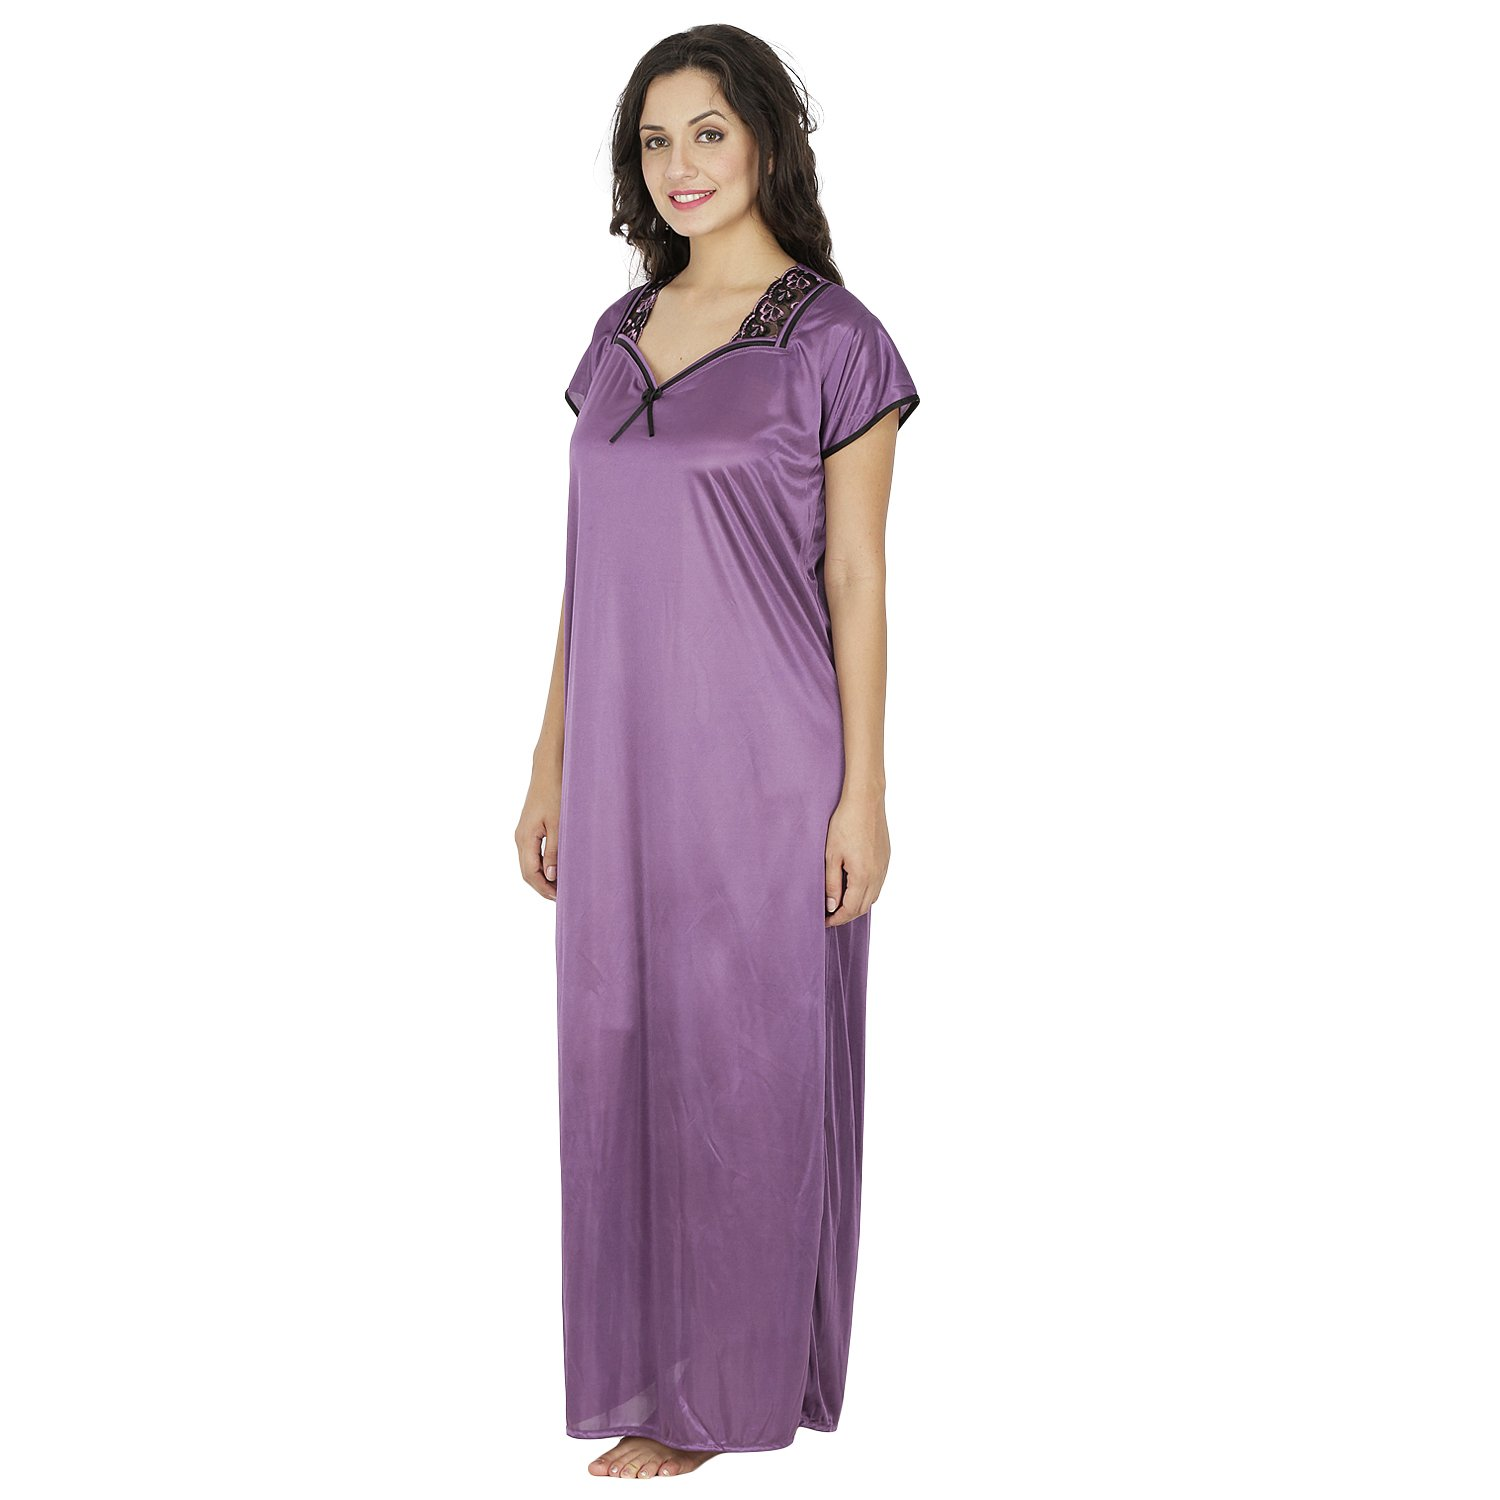 Klamotten Purple Satin Long Nighty  Amazon.in  Clothing   Accessories 5381d00d7